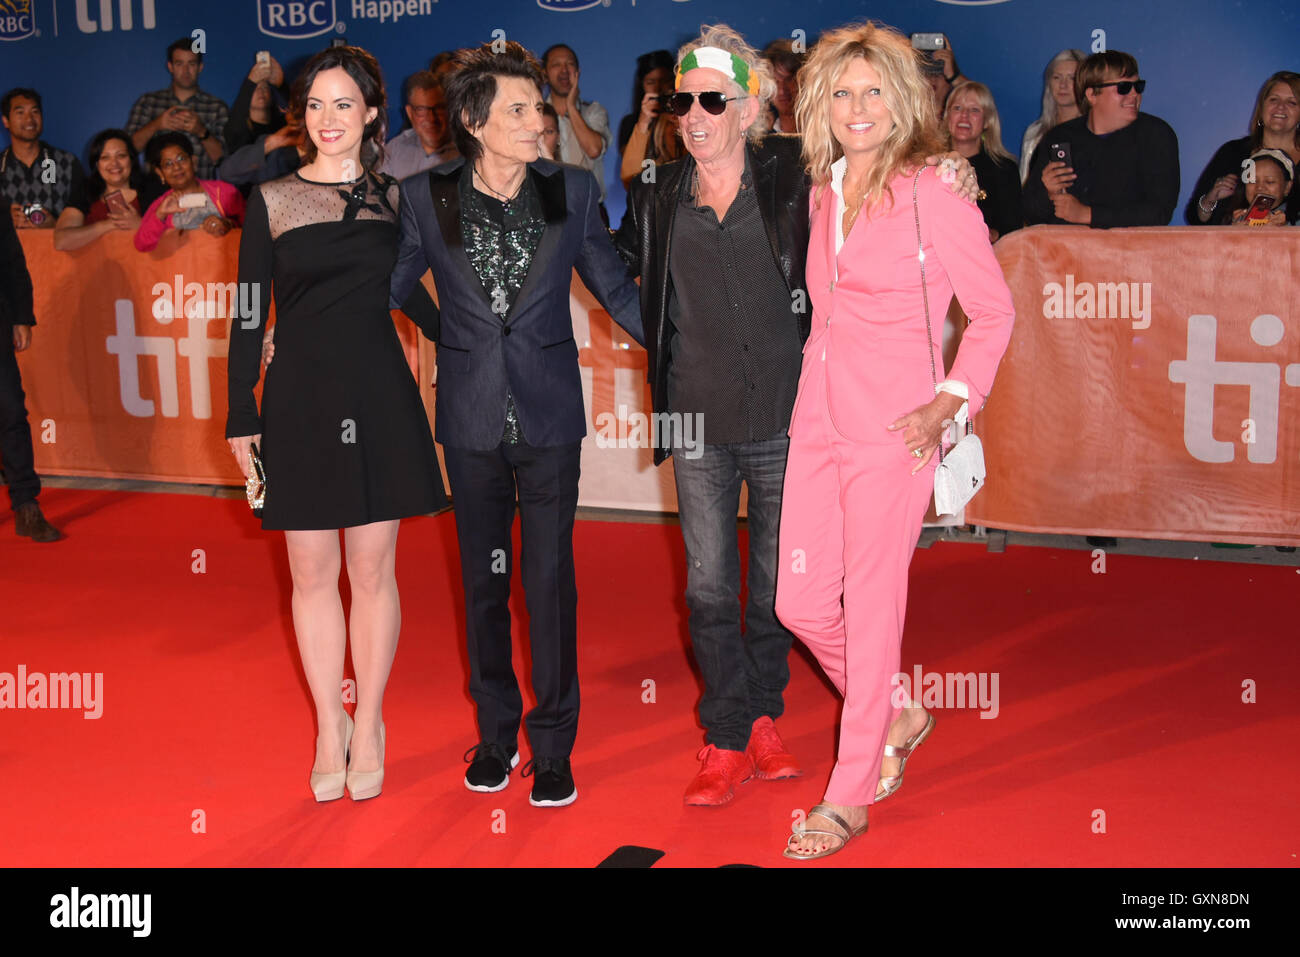 Toronto, Ontario, Canada. 16th Sep, 2016. RONNIE WOOD, SALLY HUMPHREYS, KEITH RICHARDS and PATTI HANSEN attend the - Stock Image